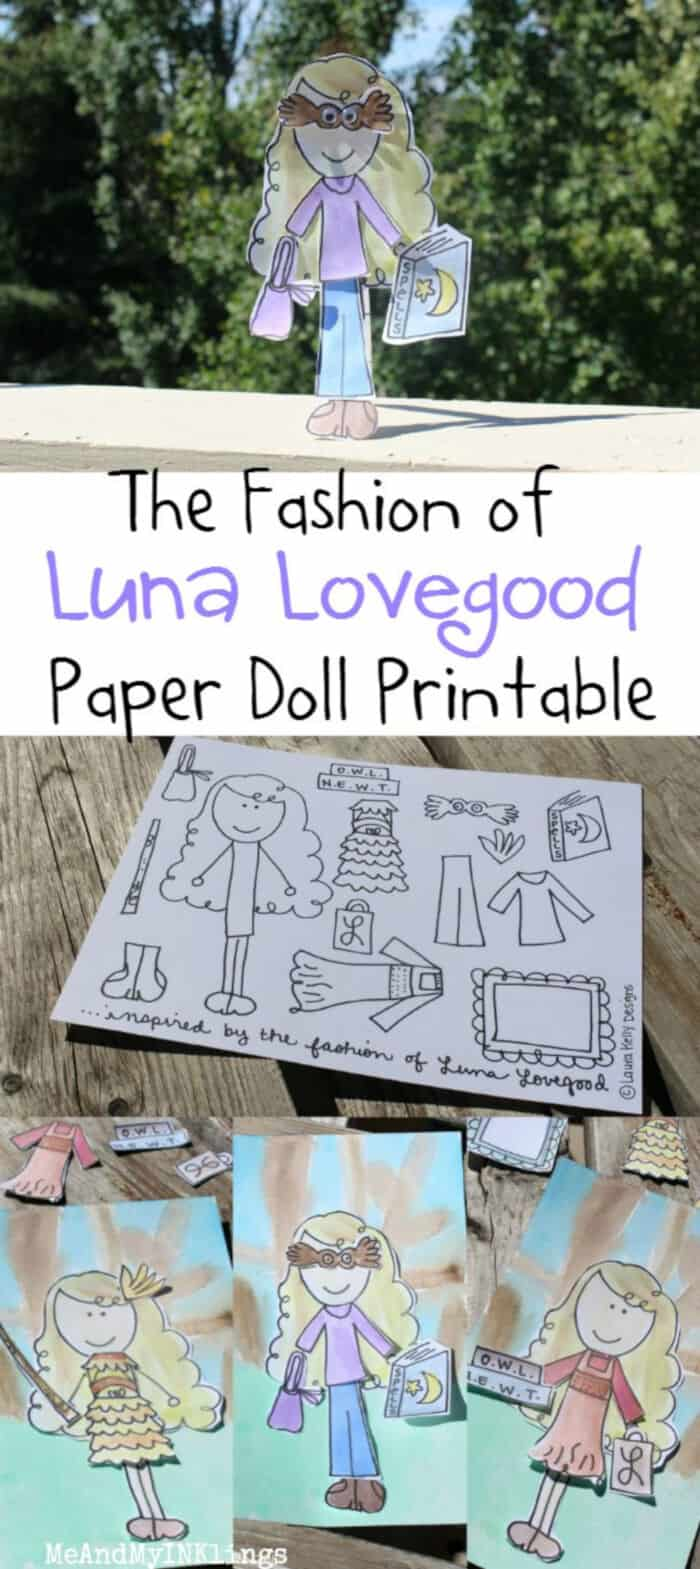 Paper Doll Fun with Luna Lovegood by Me and My Inklings